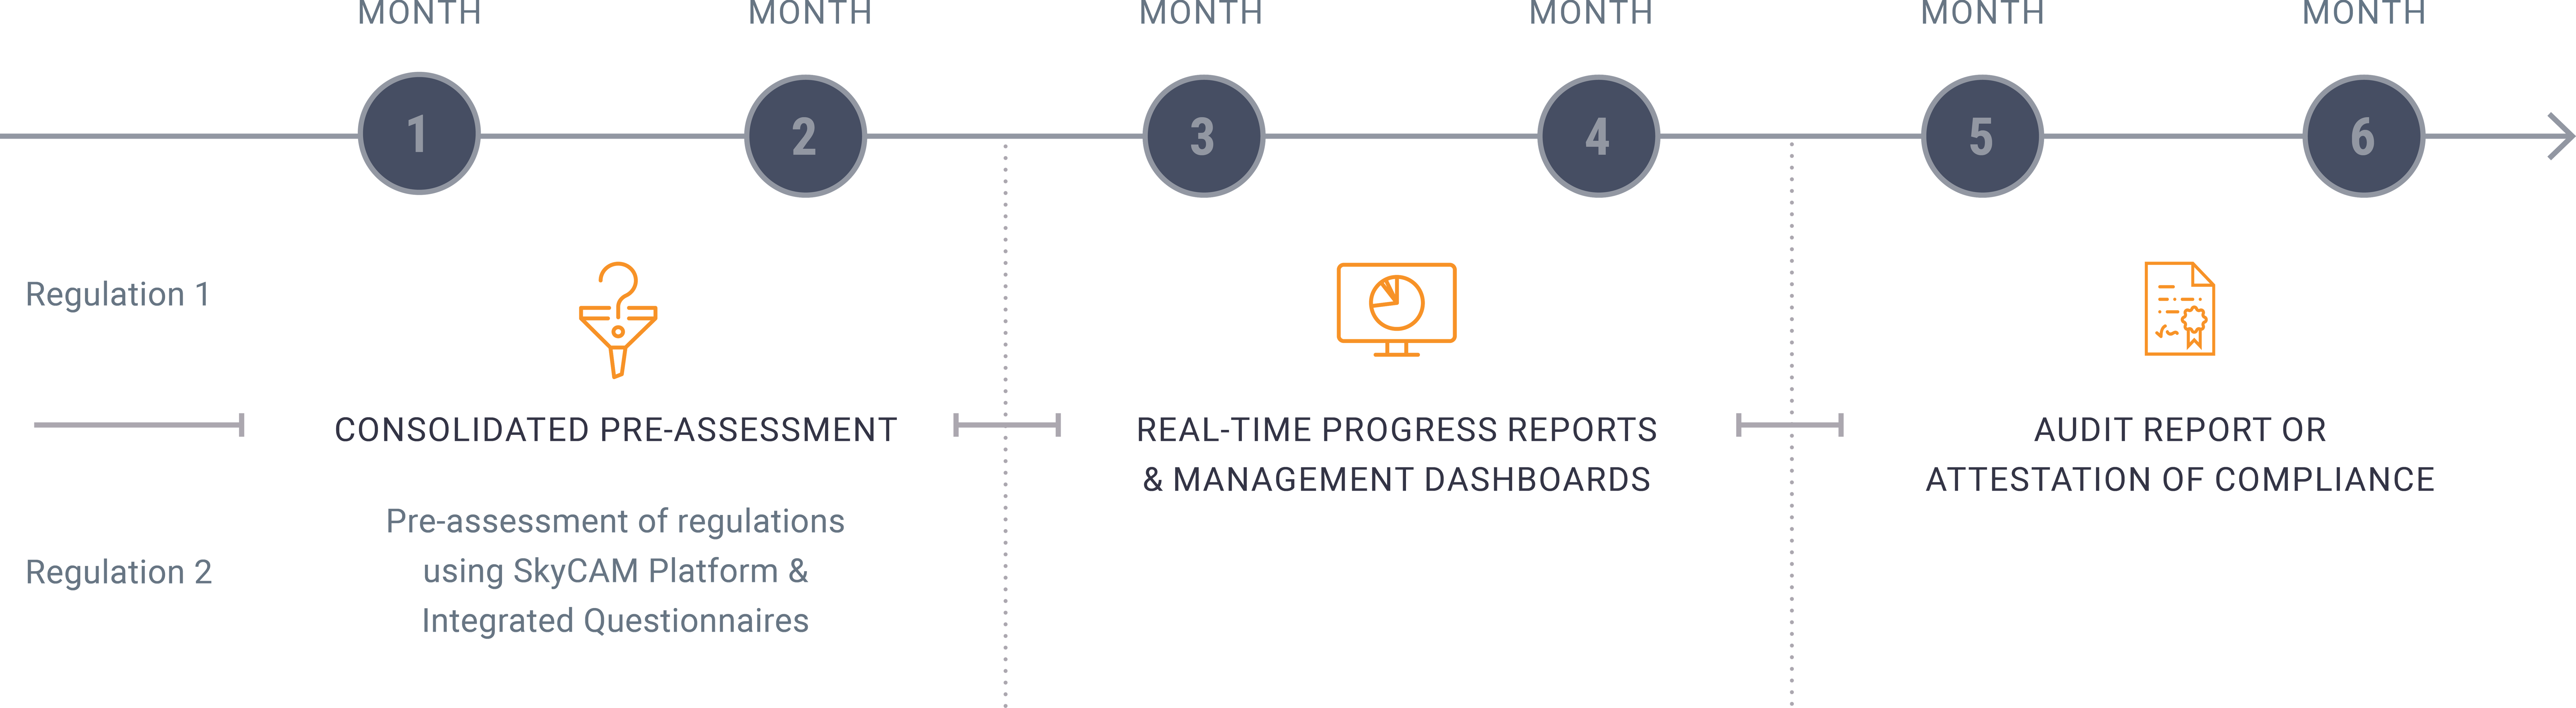 OneAuditTimelineApproach